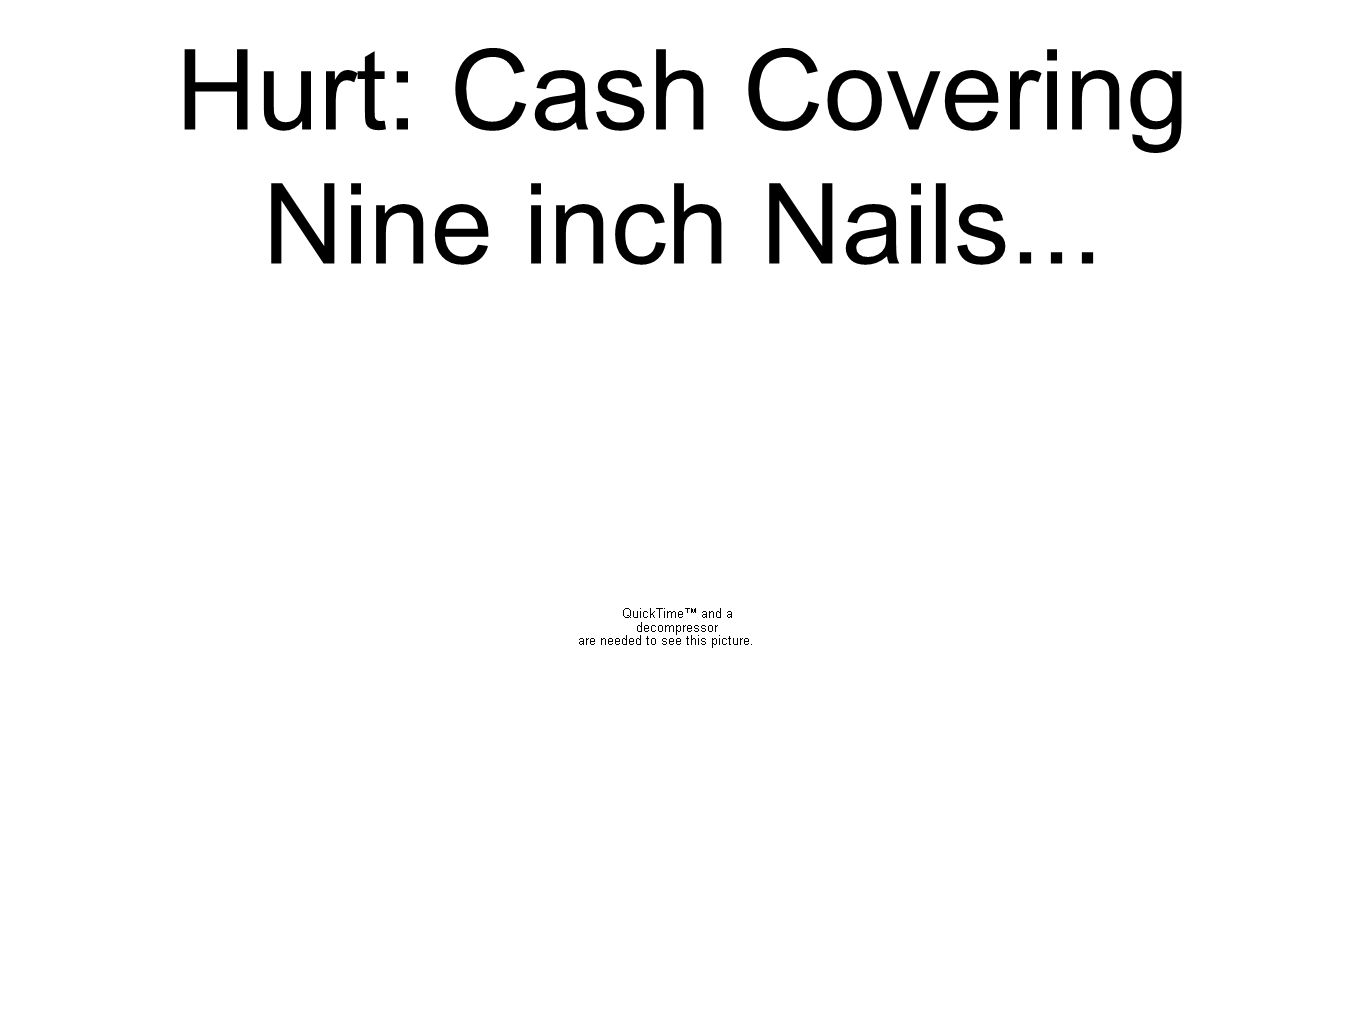 Hurt: Cash Covering Nine inch Nails...